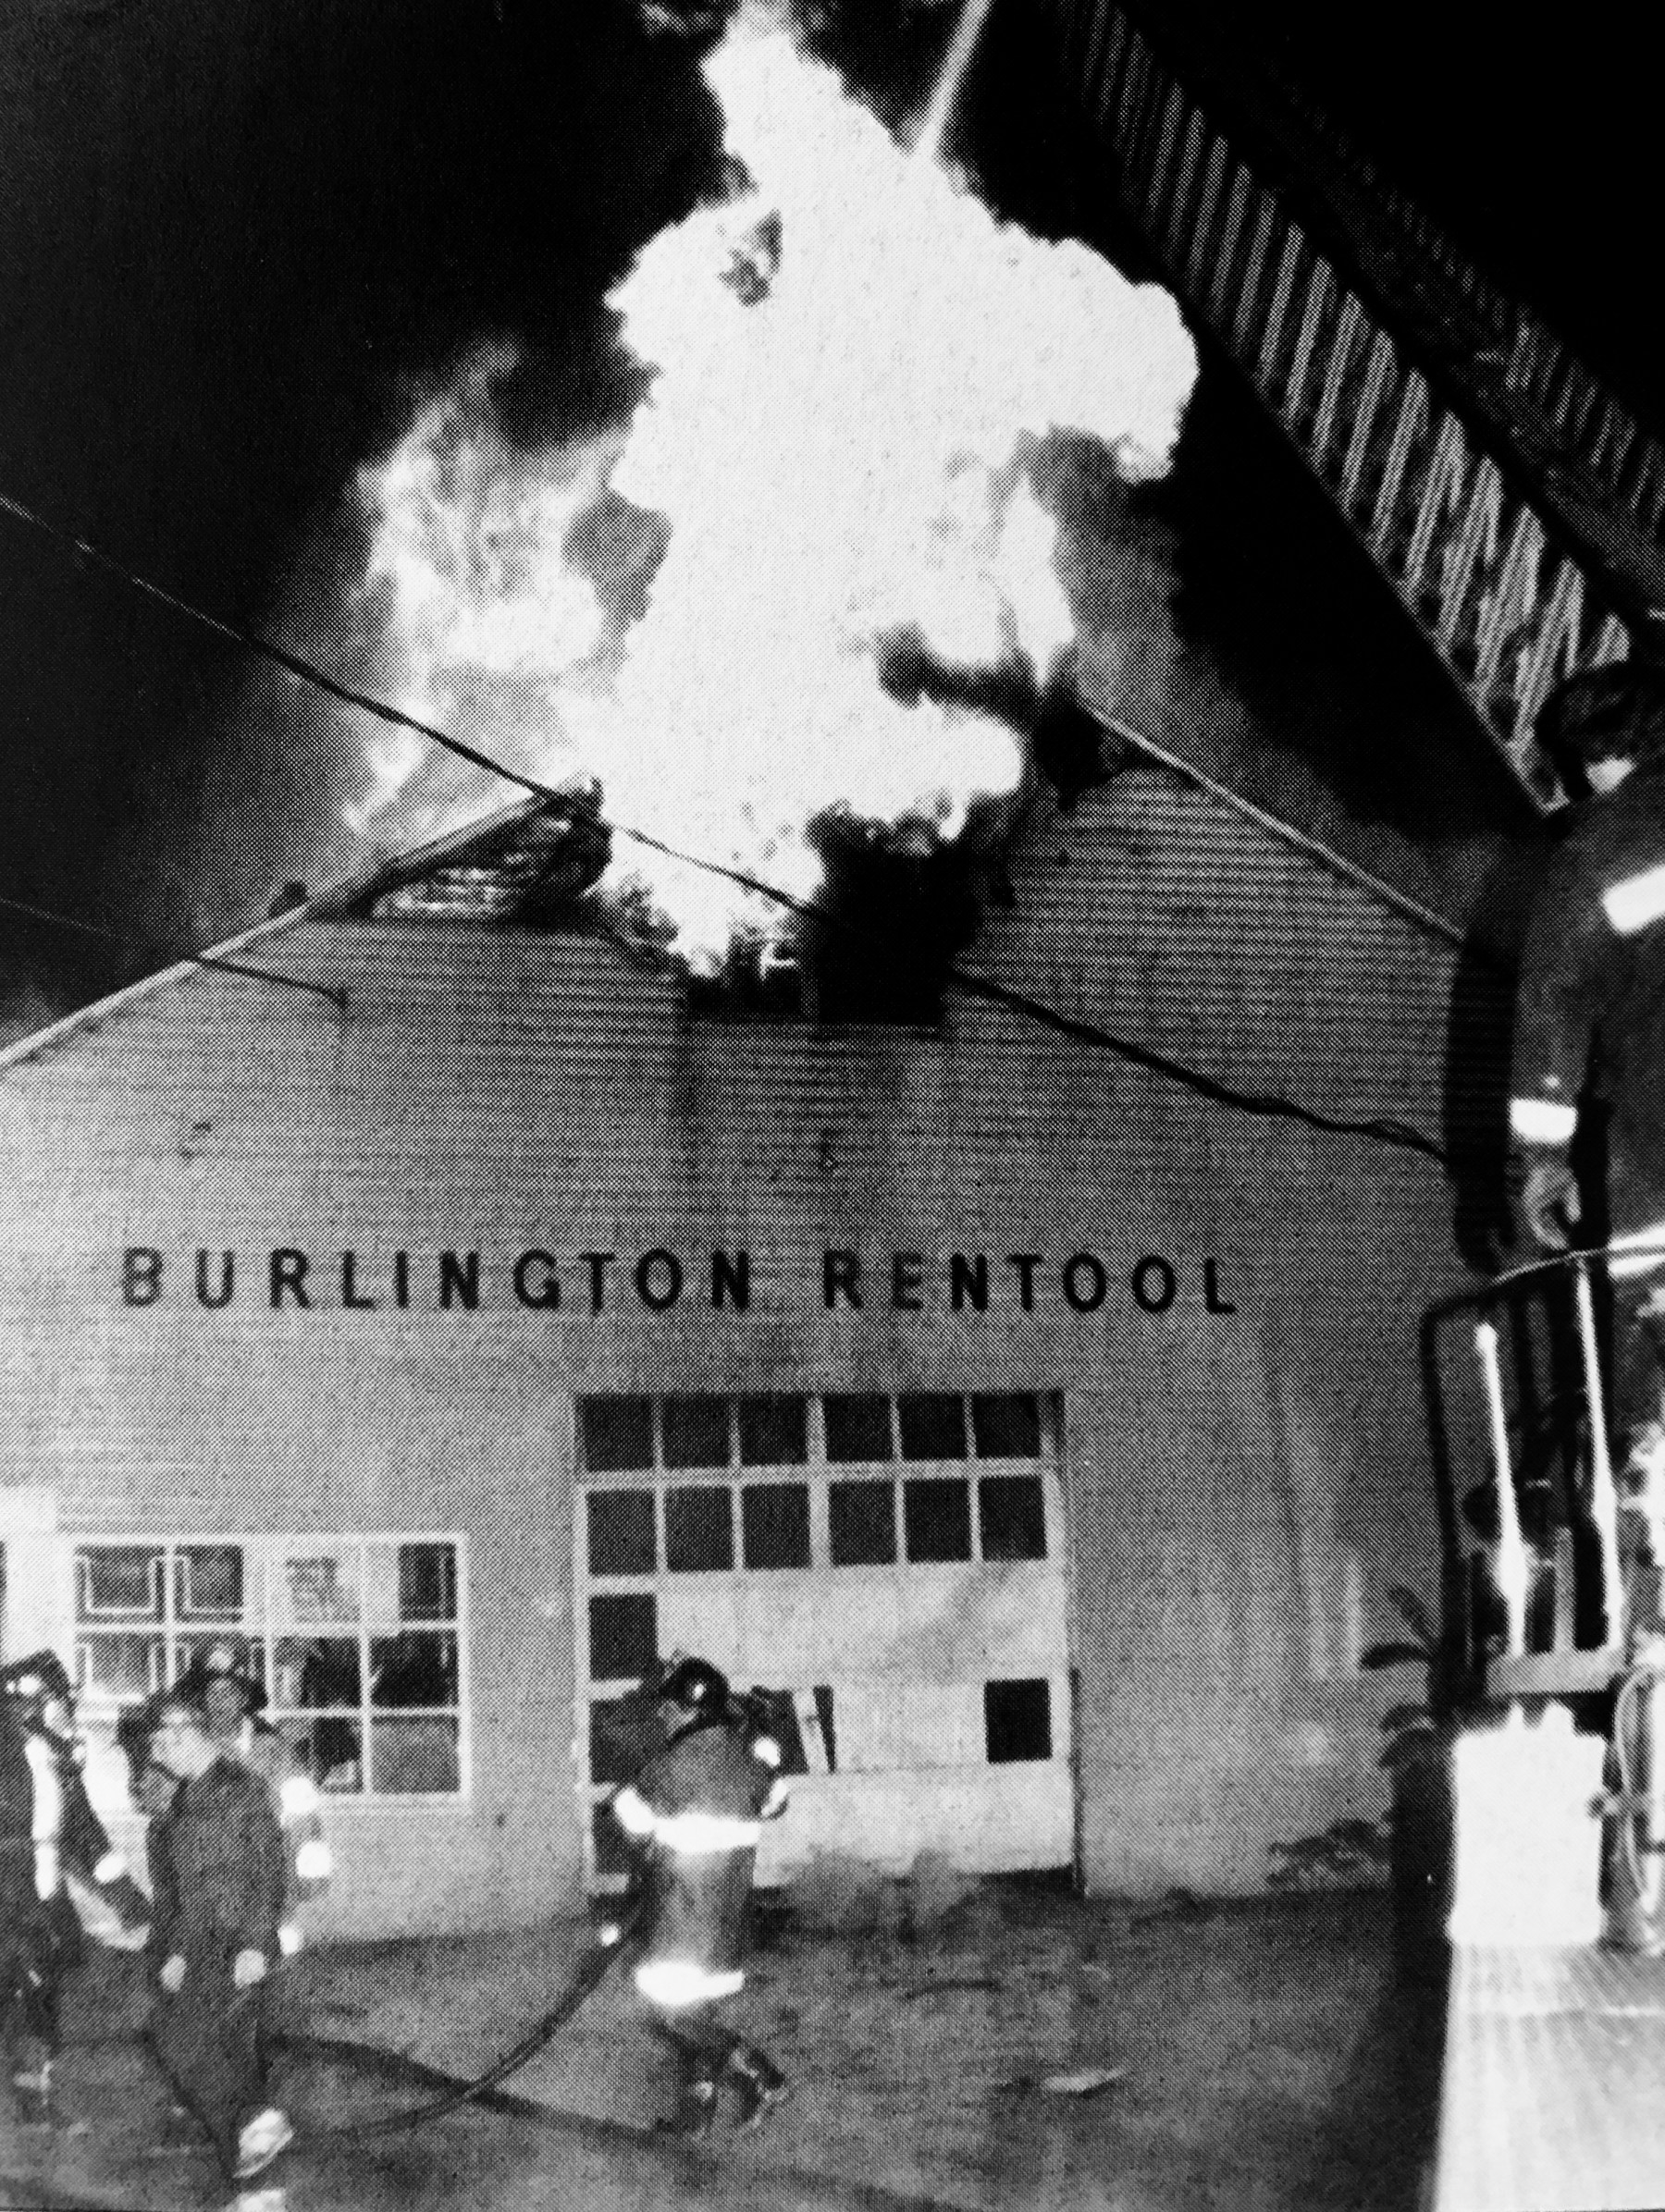 Burlington Rentool fire, 1970